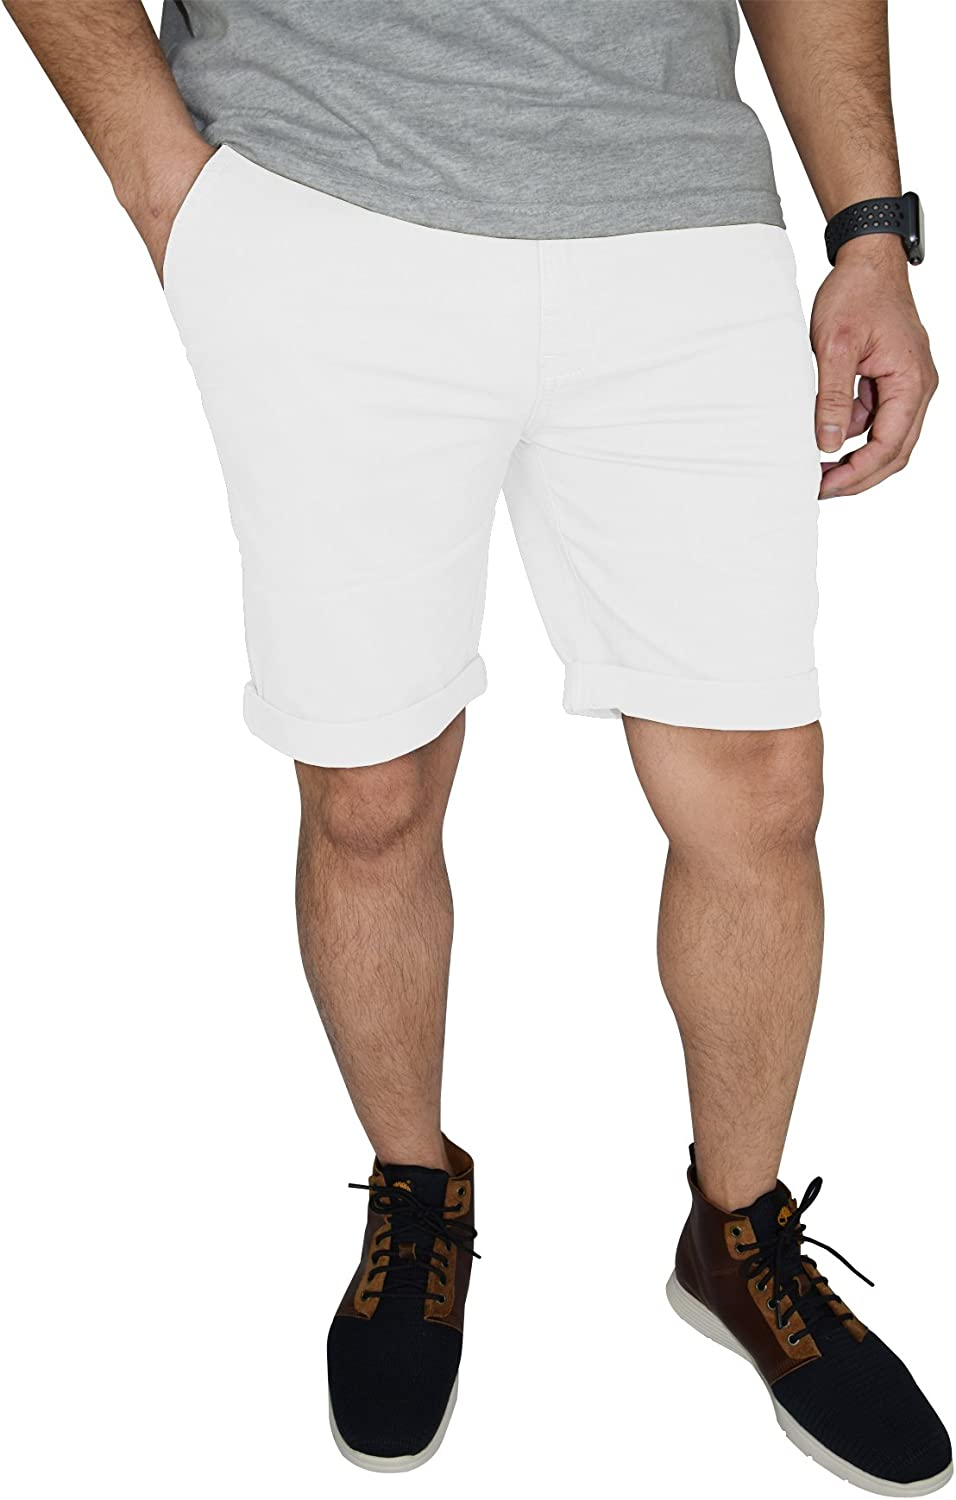 westAce Mens Stretch Chino Shorts Flat Front Slim Fit Spandex Half Pants